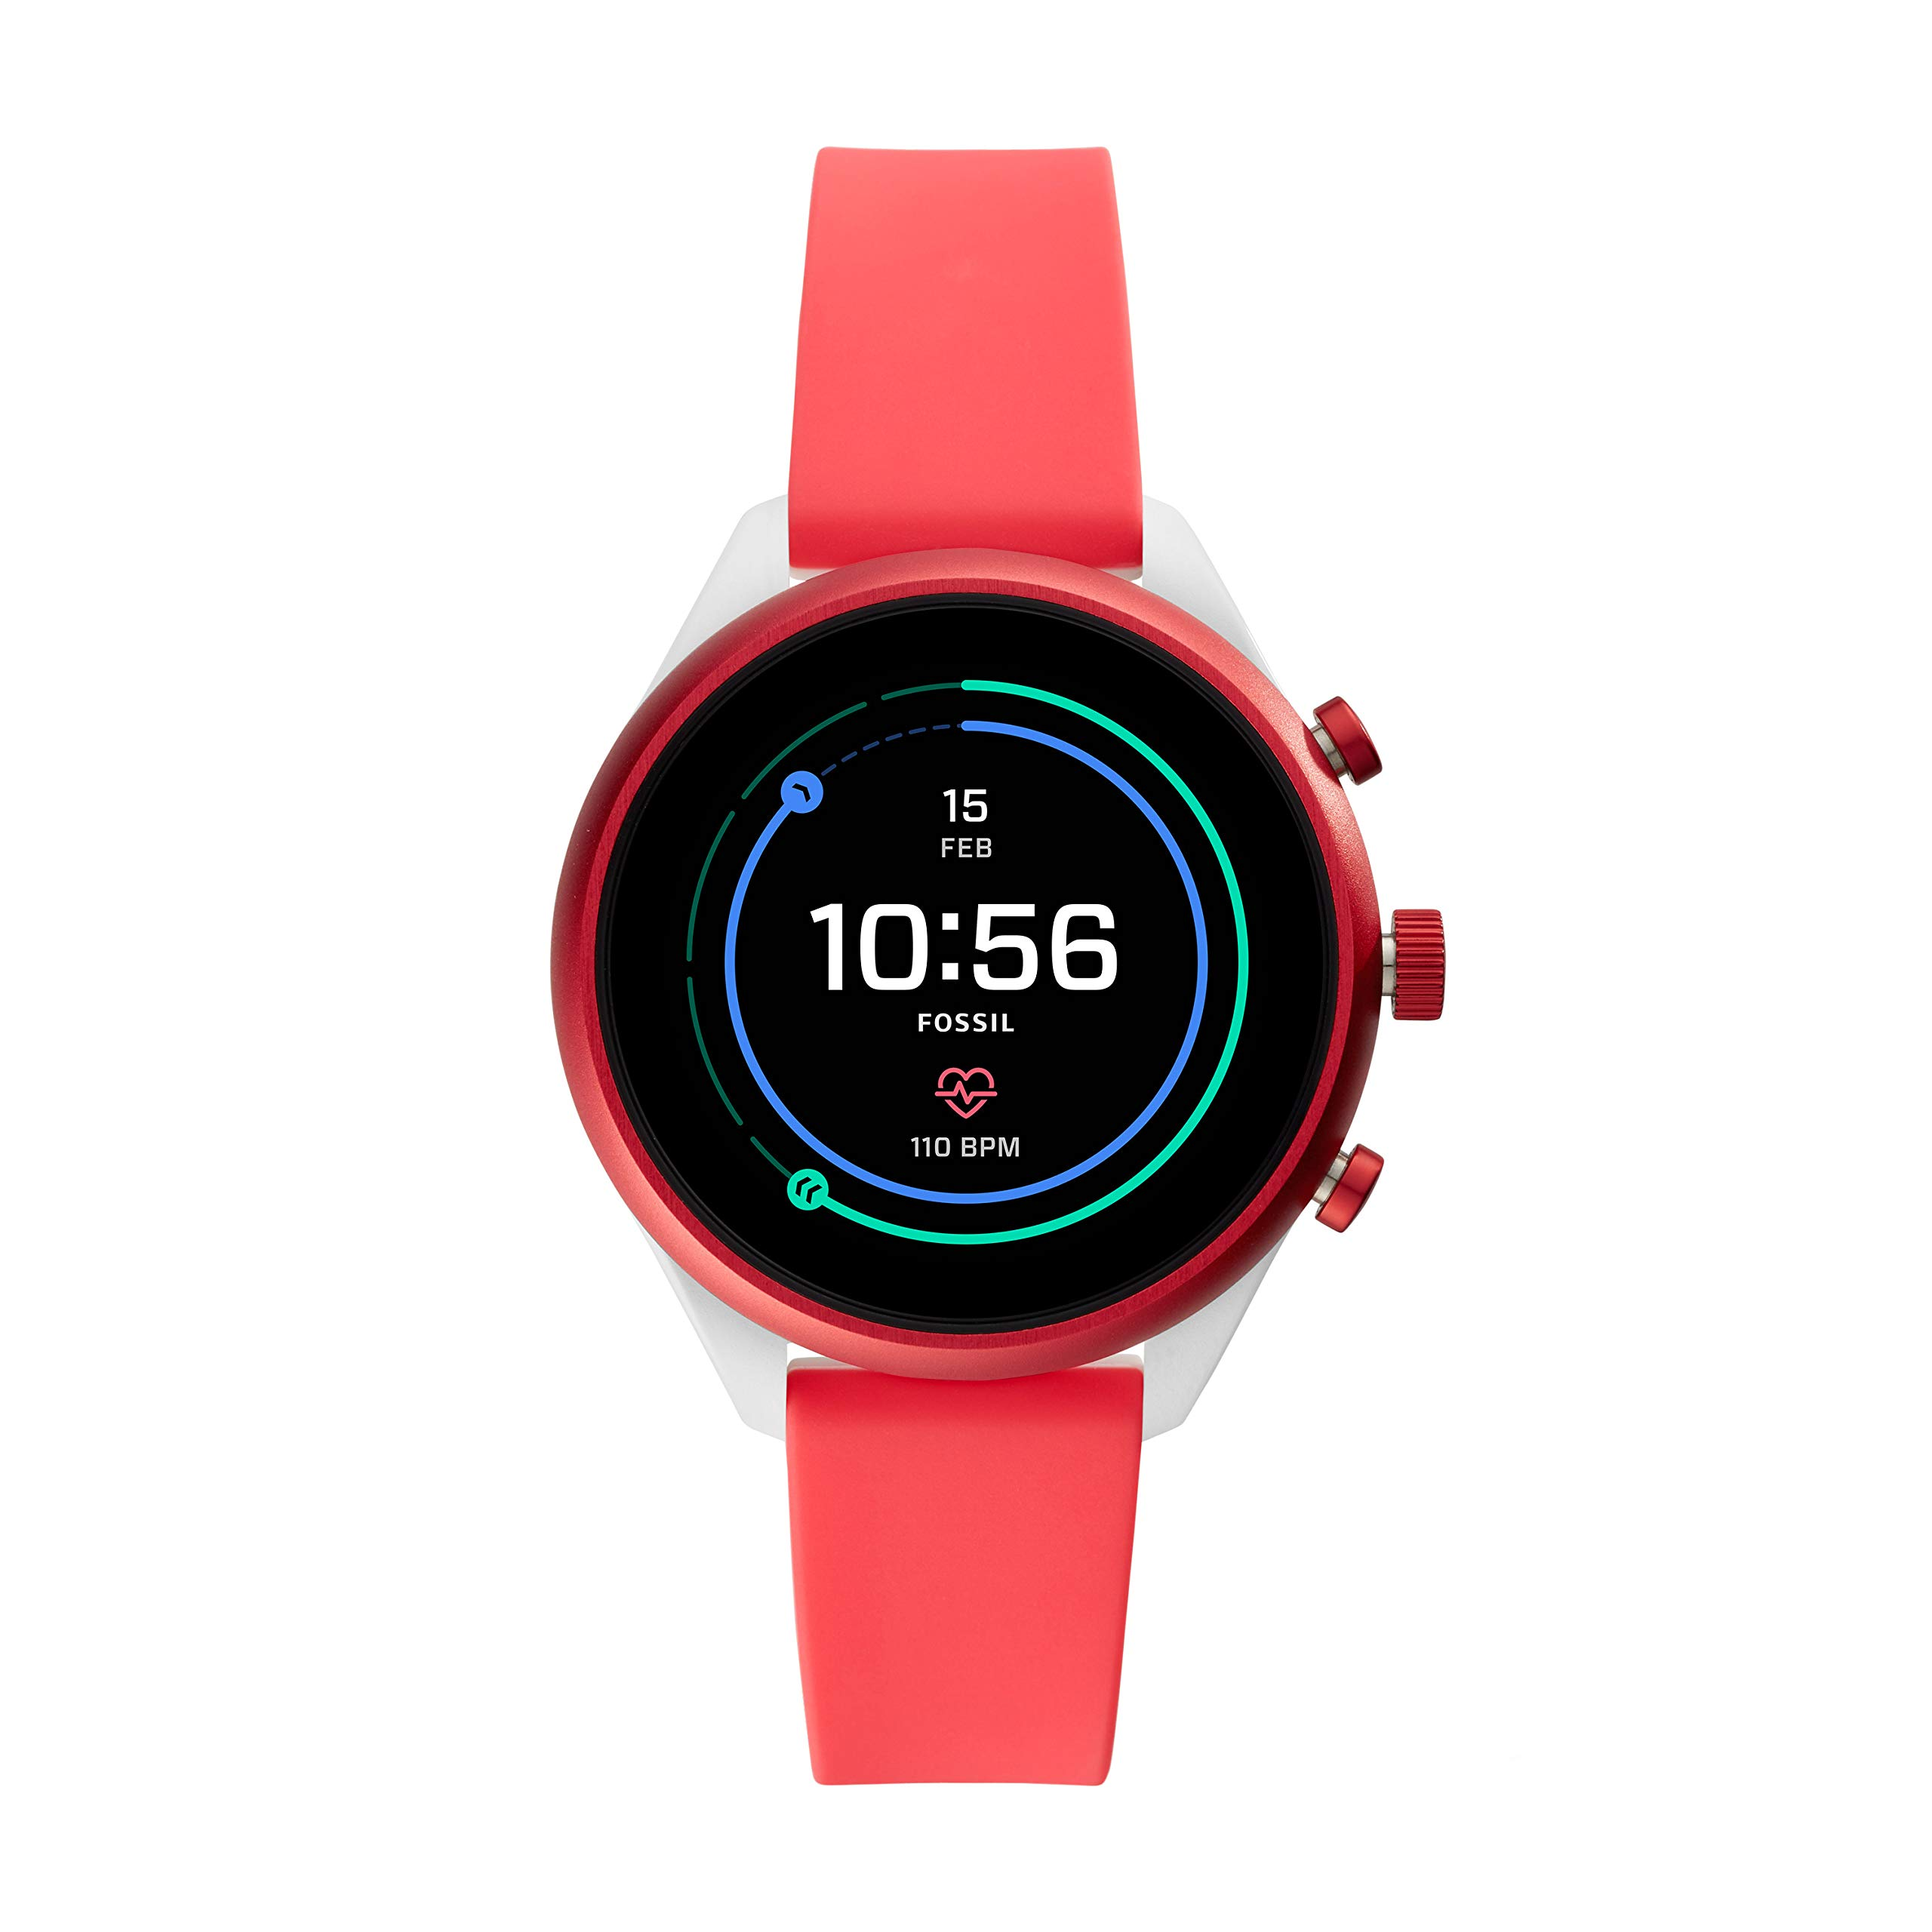 ویکالا · خرید  اصل اورجینال · خرید از آمازون · Fossil Women's Gen 4 Sport Heart Rate Metal and Silicone Touchscreen Smartwatch, Color: Coral Red (FTW6027) wekala · ویکالا